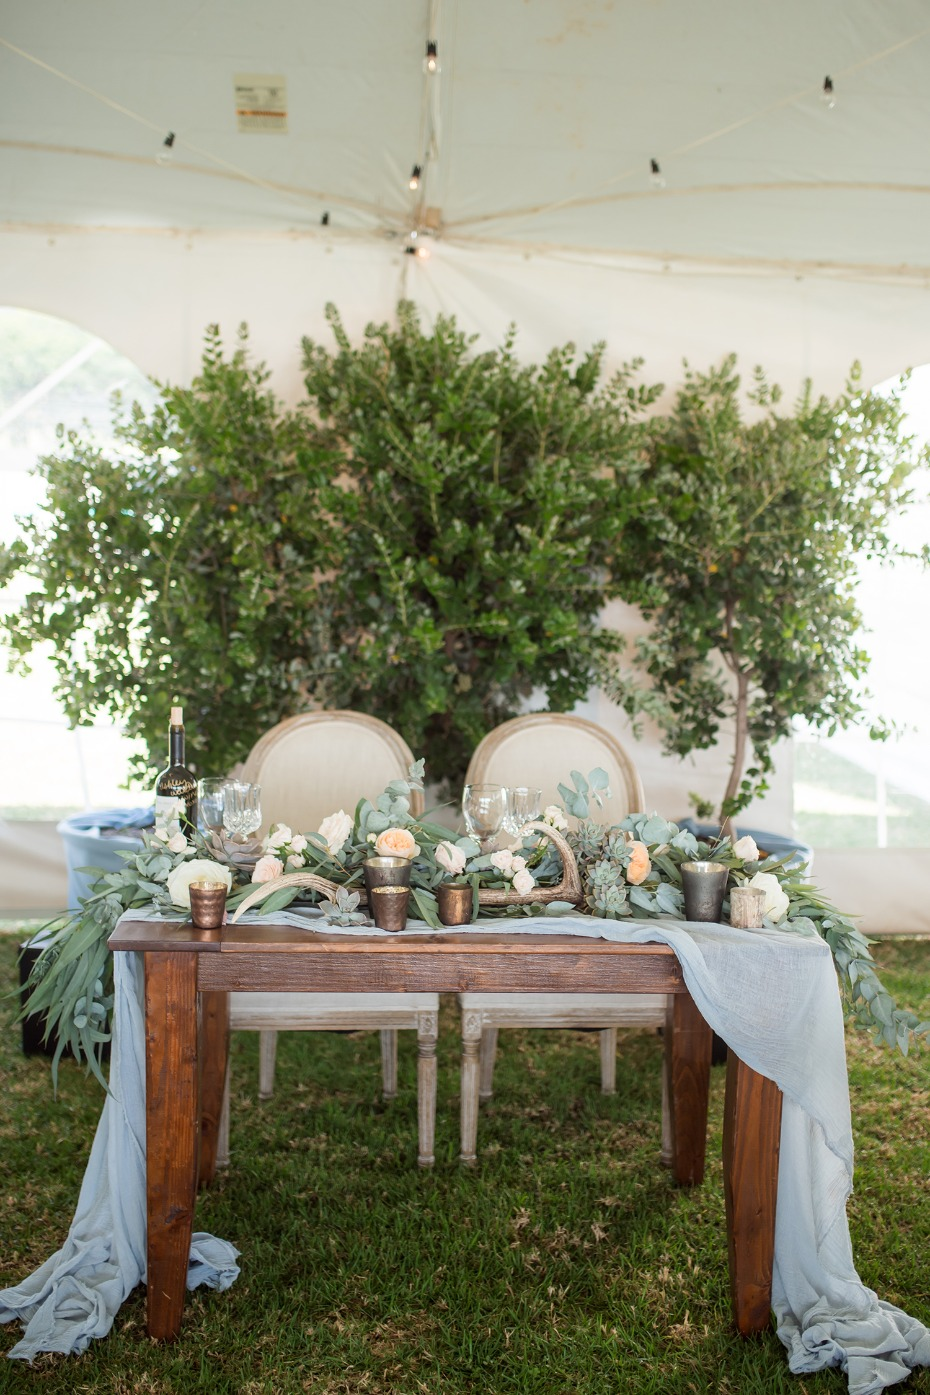 Rustic chic sweetheart table for two